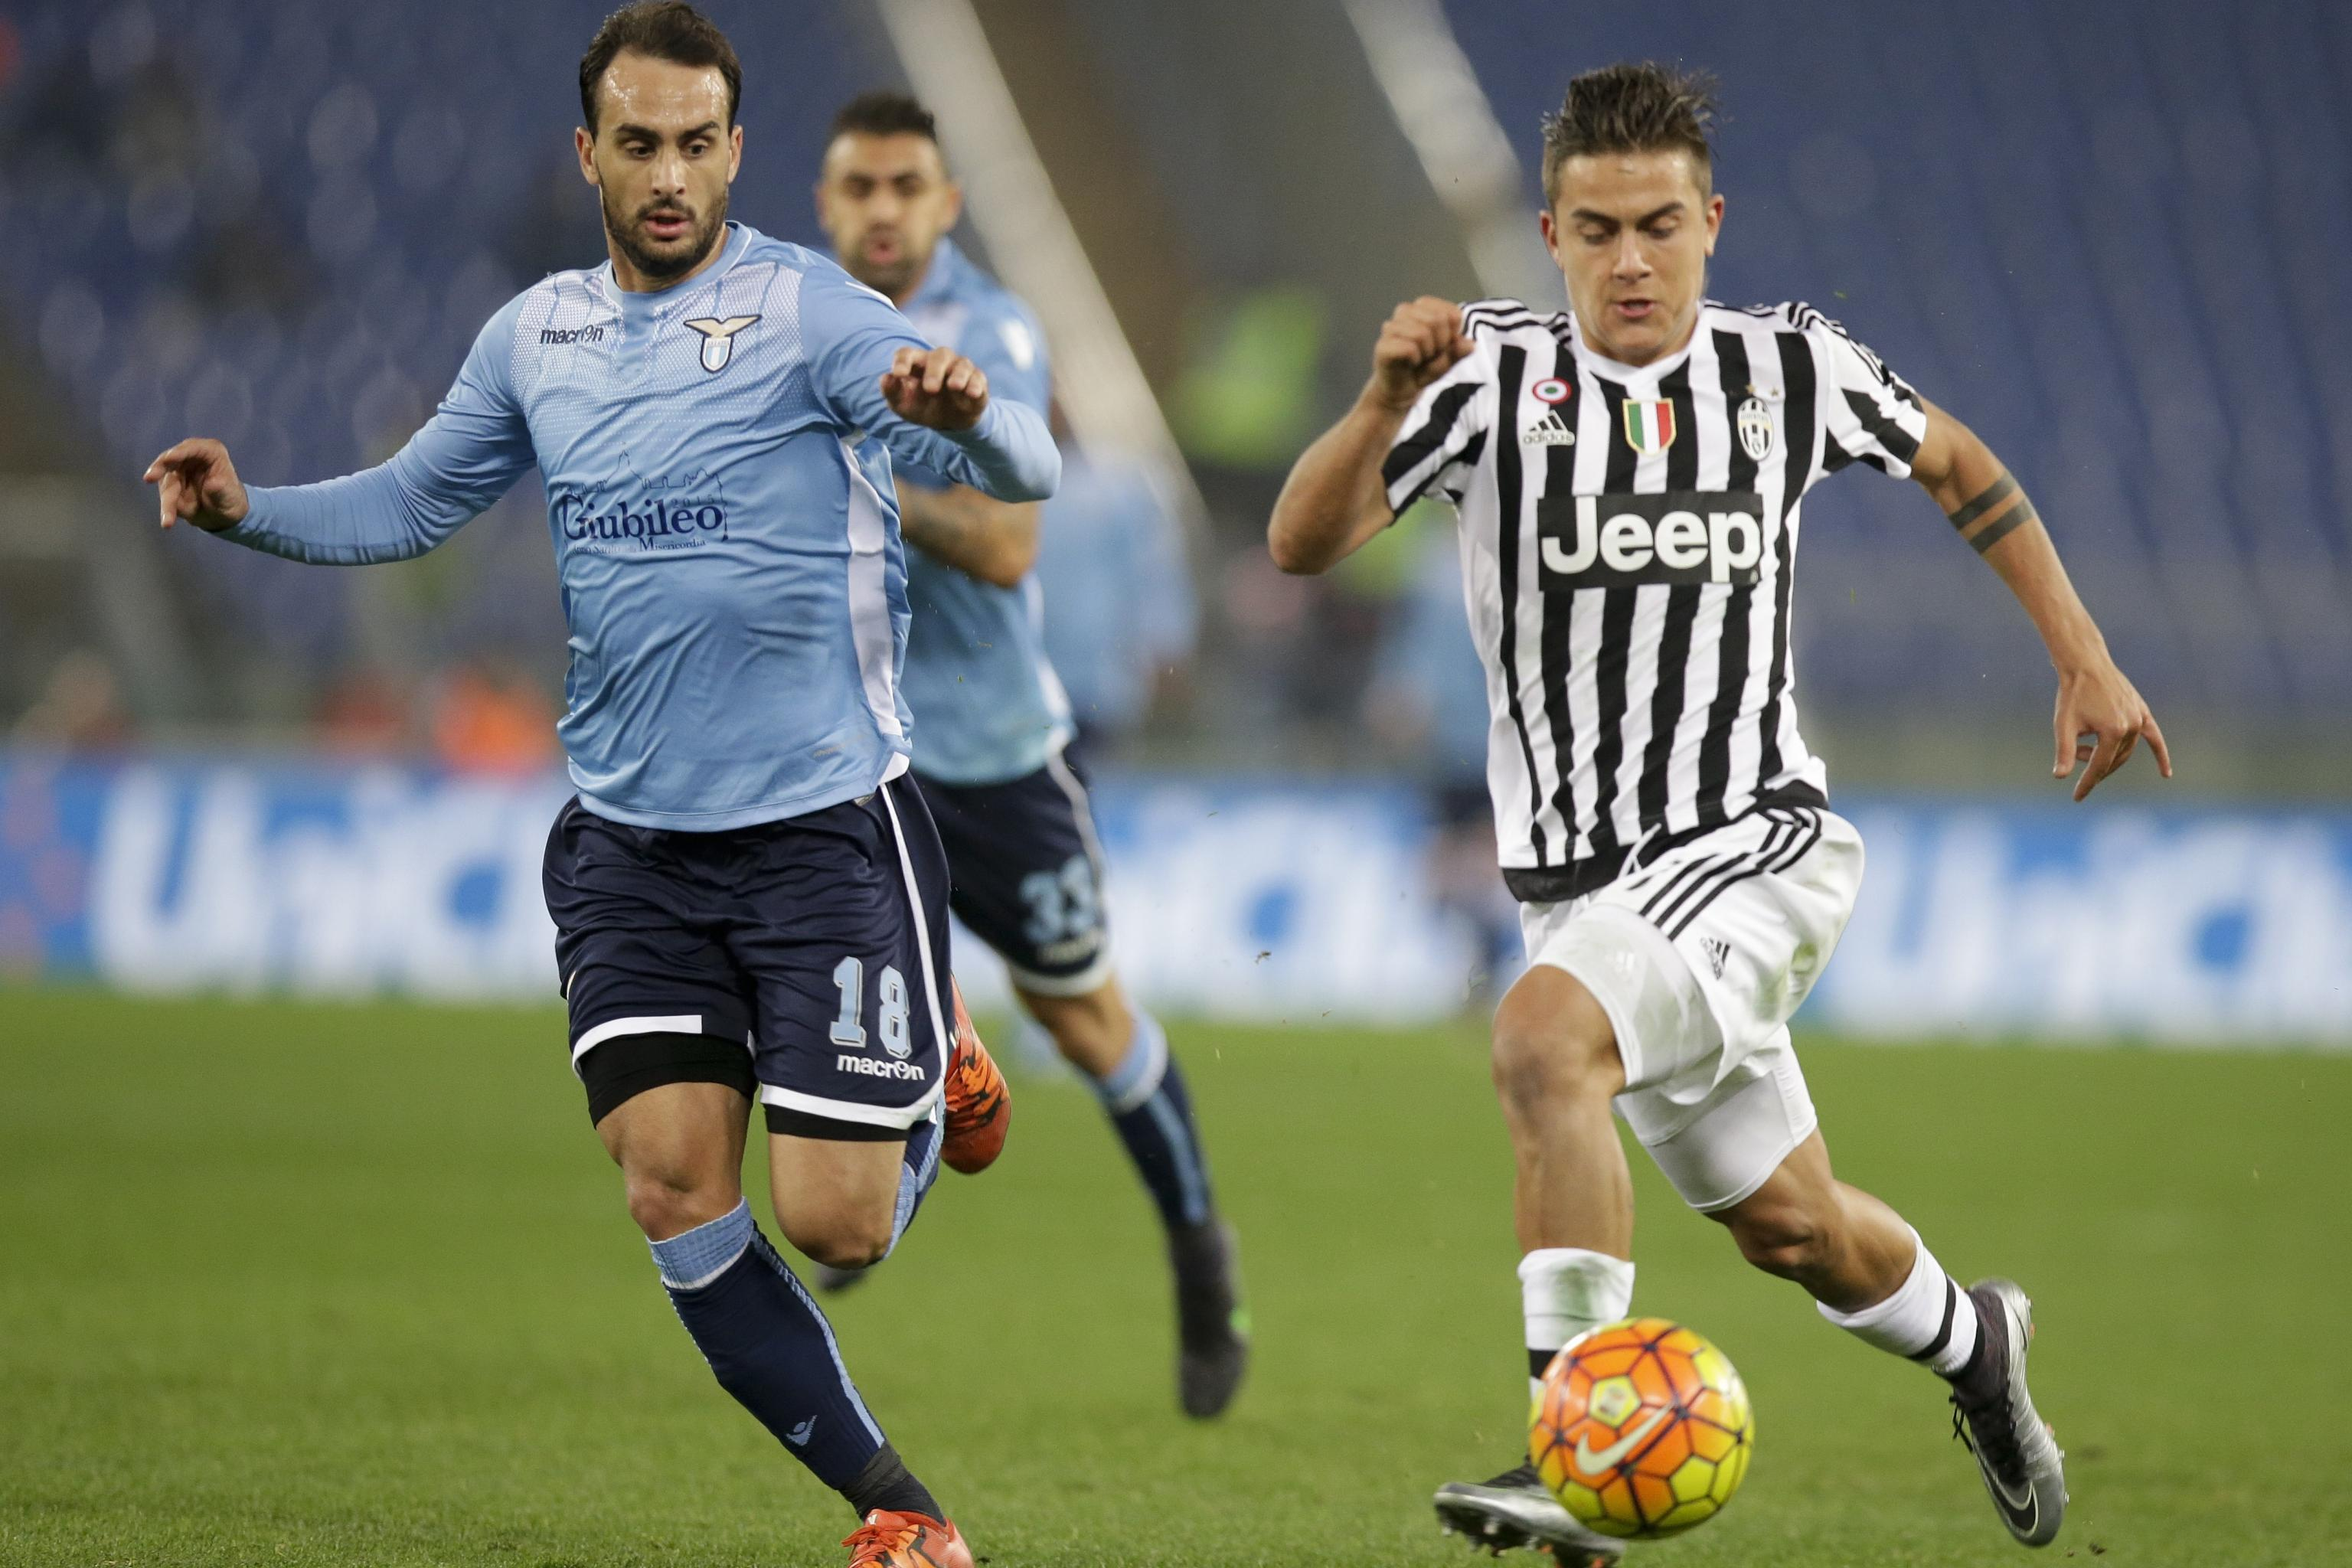 Lazio Vs Juventus Team News Predicted Lineups Live Stream Tv Info Bleacher Report Latest News Videos And Highlights